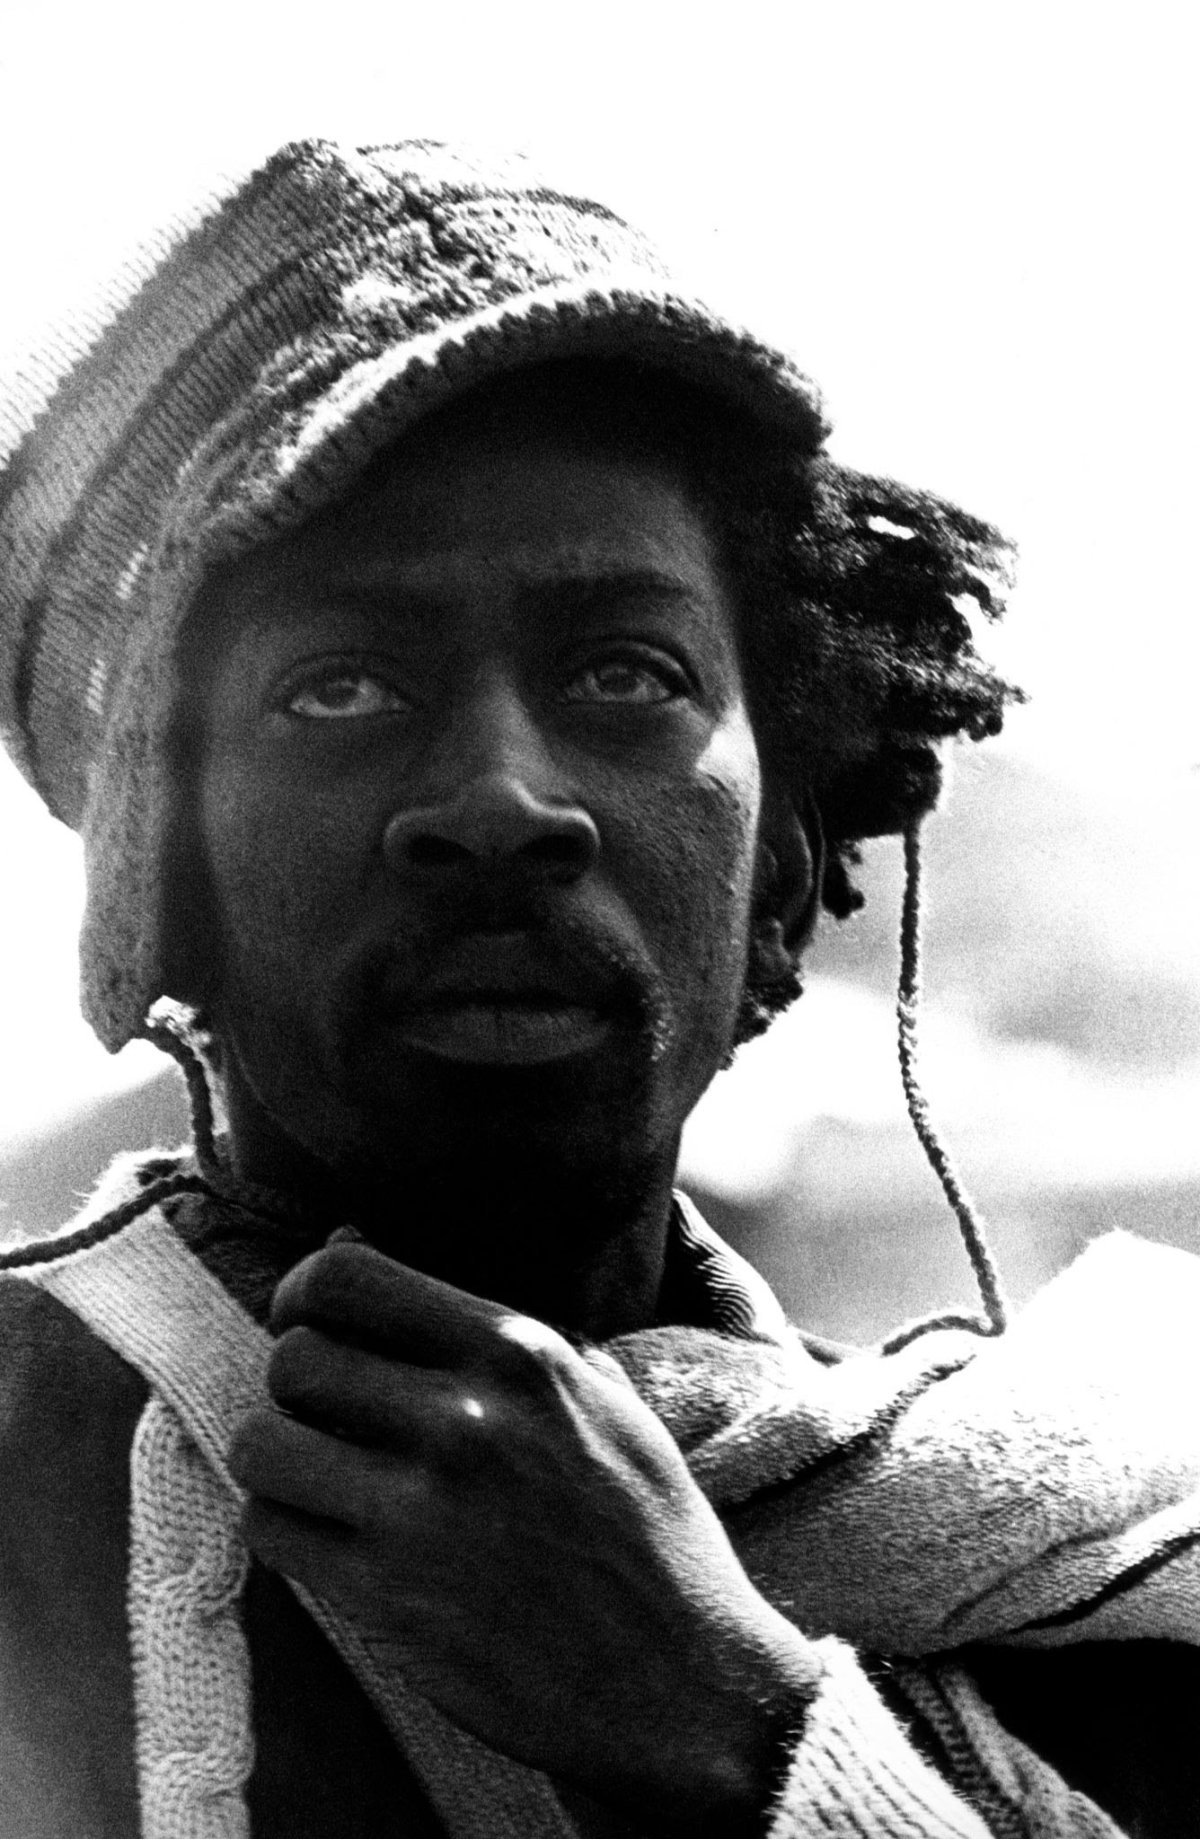 Song of the Day 29: Bunny Wailer1947-2021